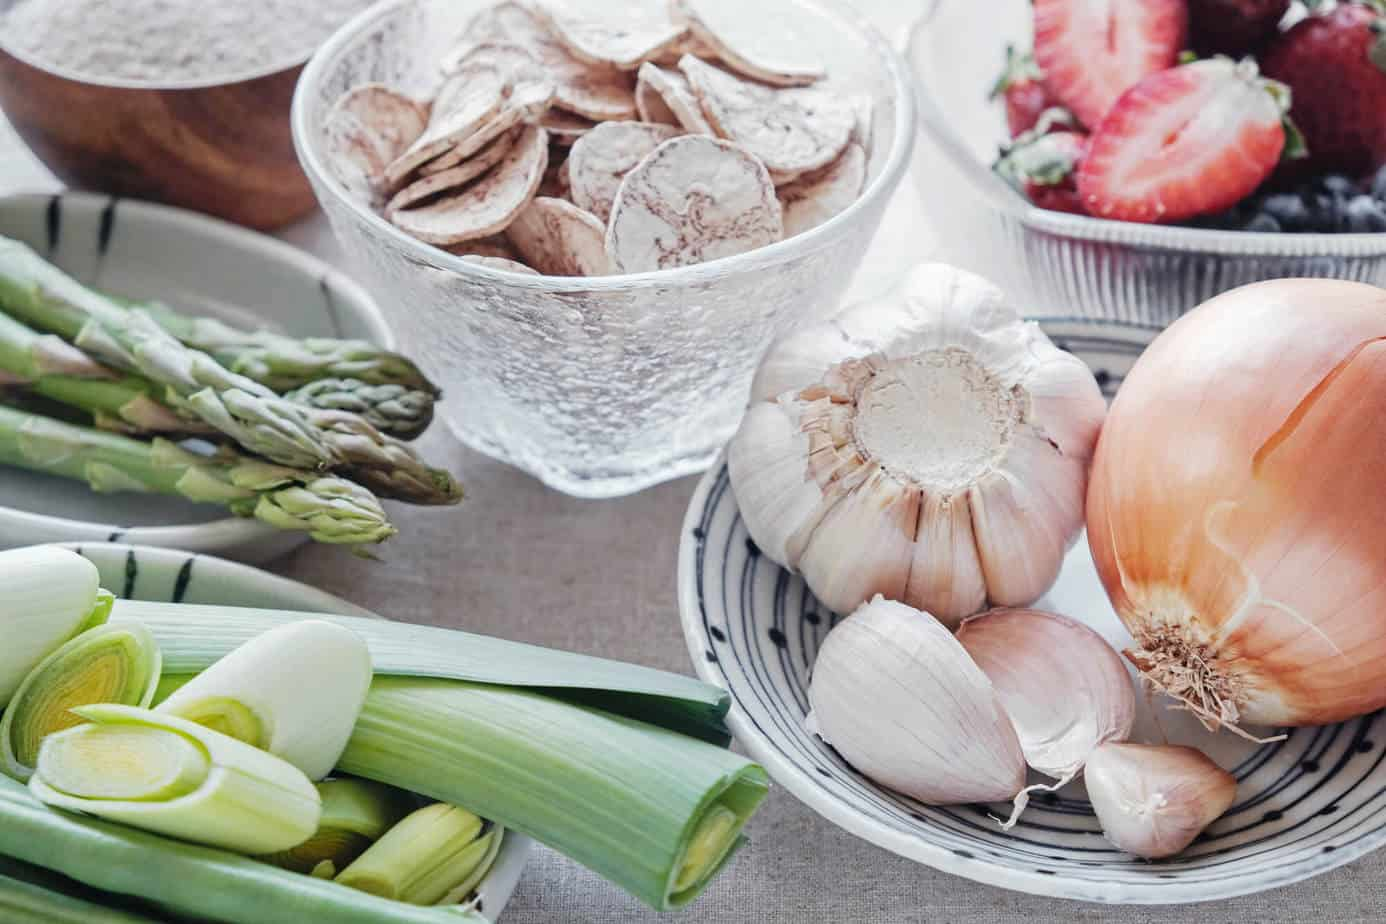 Find out what to eat to heal your leaky gut.